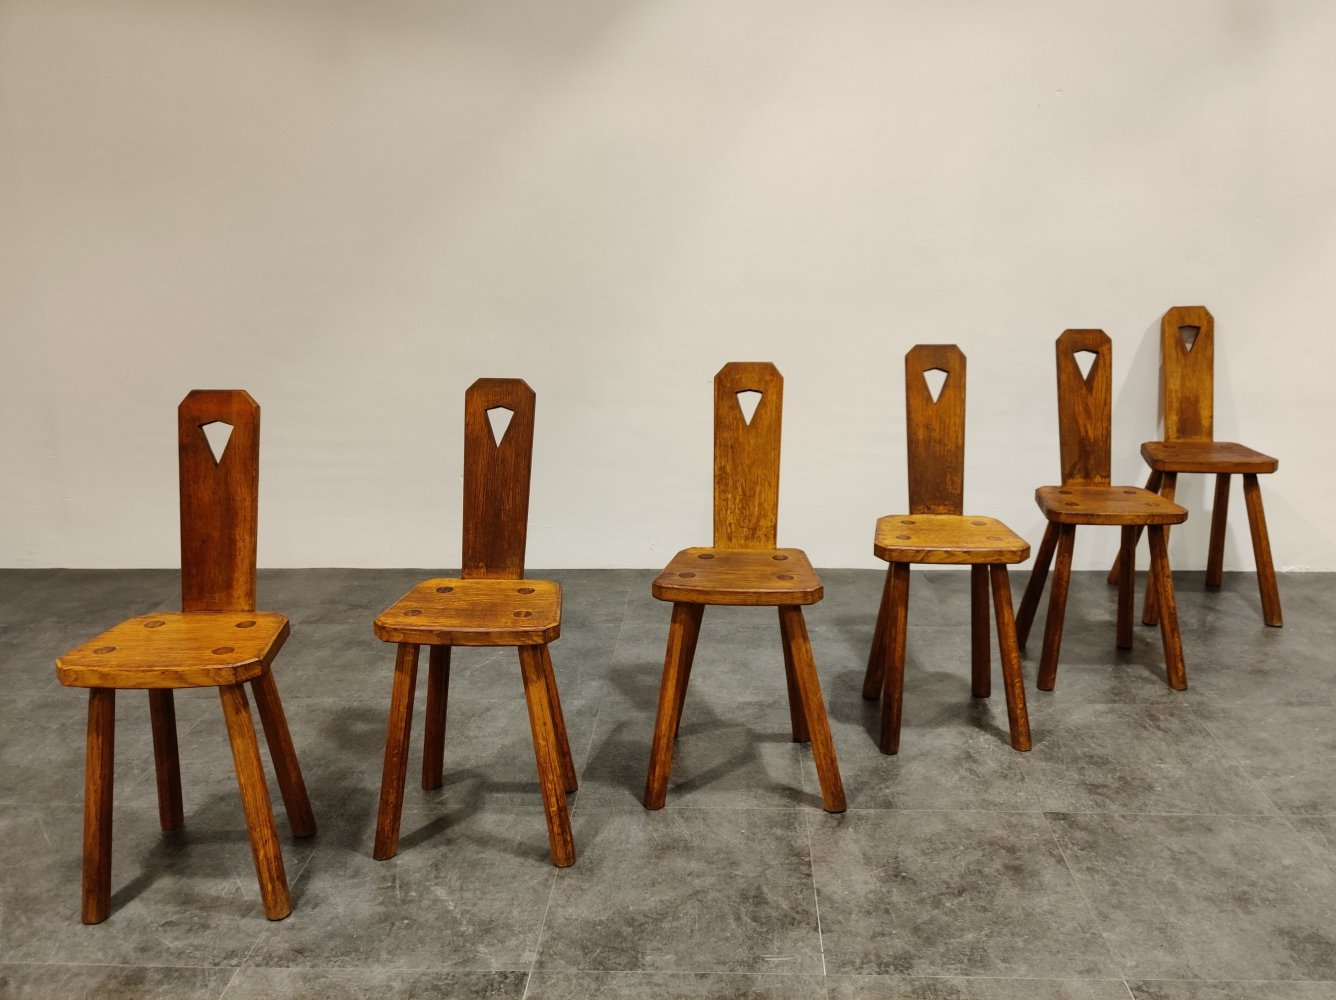 Set of 6 Mid century brutalist dining chairs, 1950s